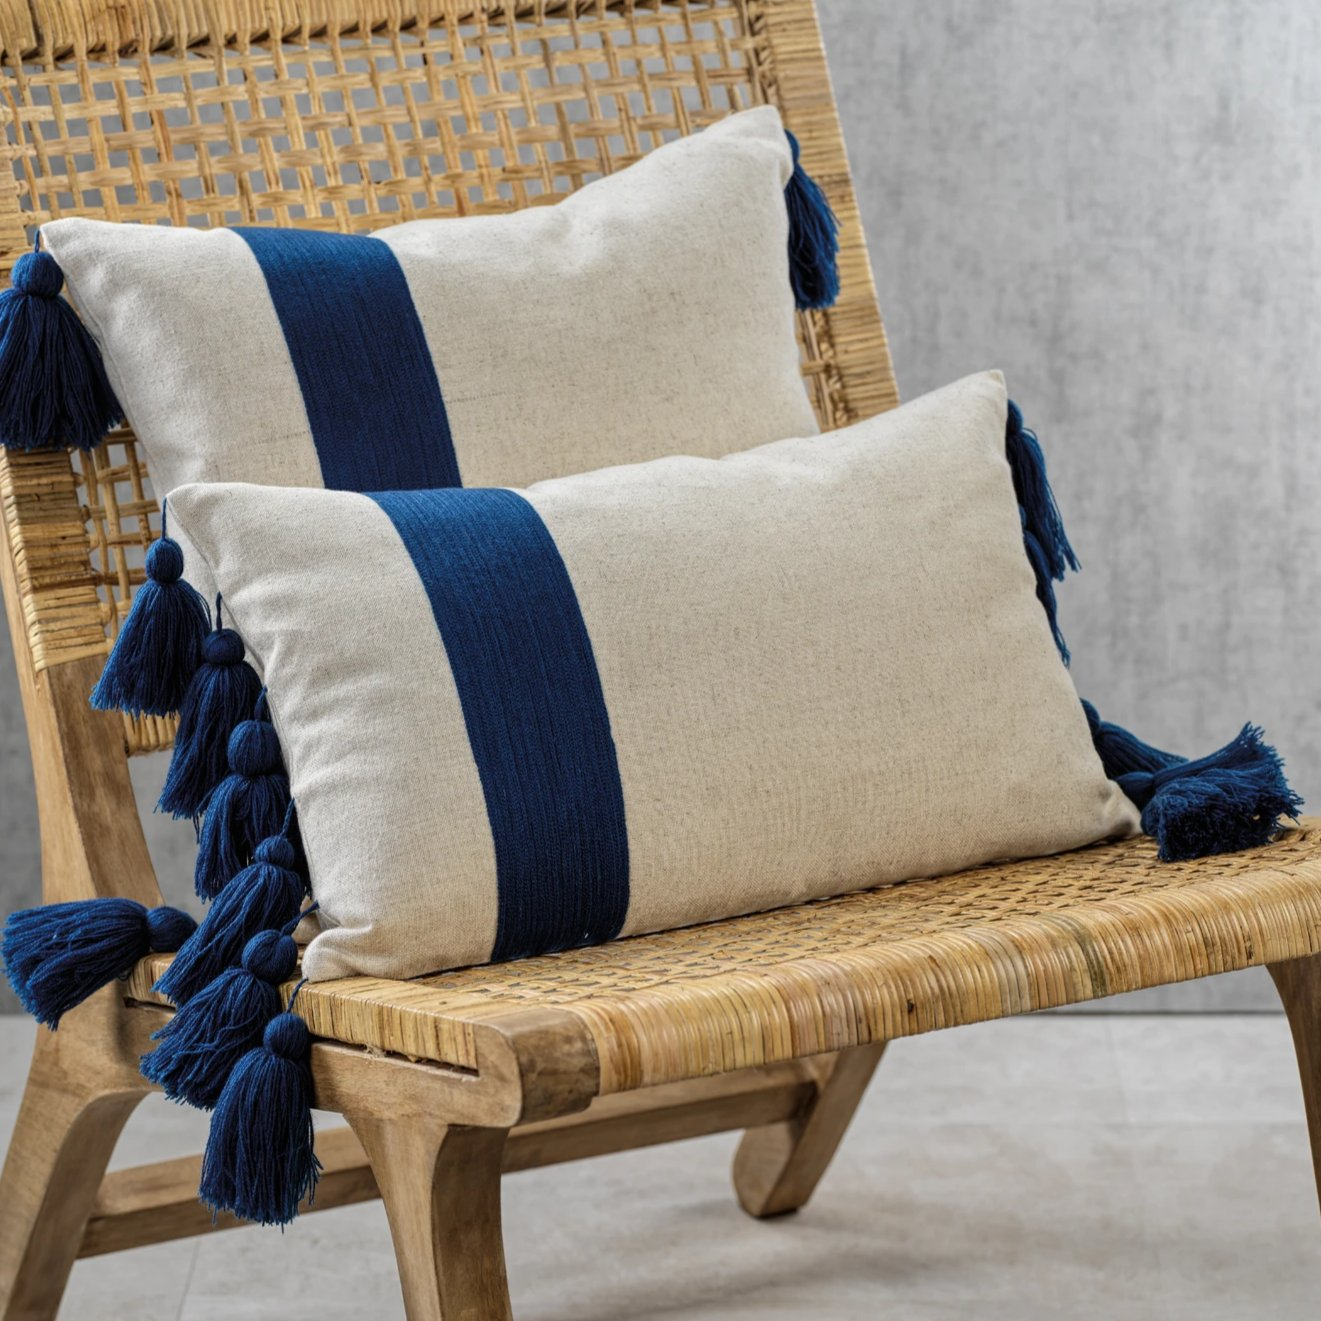 Polignano Embroidered Throw Pillow w/Tassels - Navy - CARLYLE AVENUE